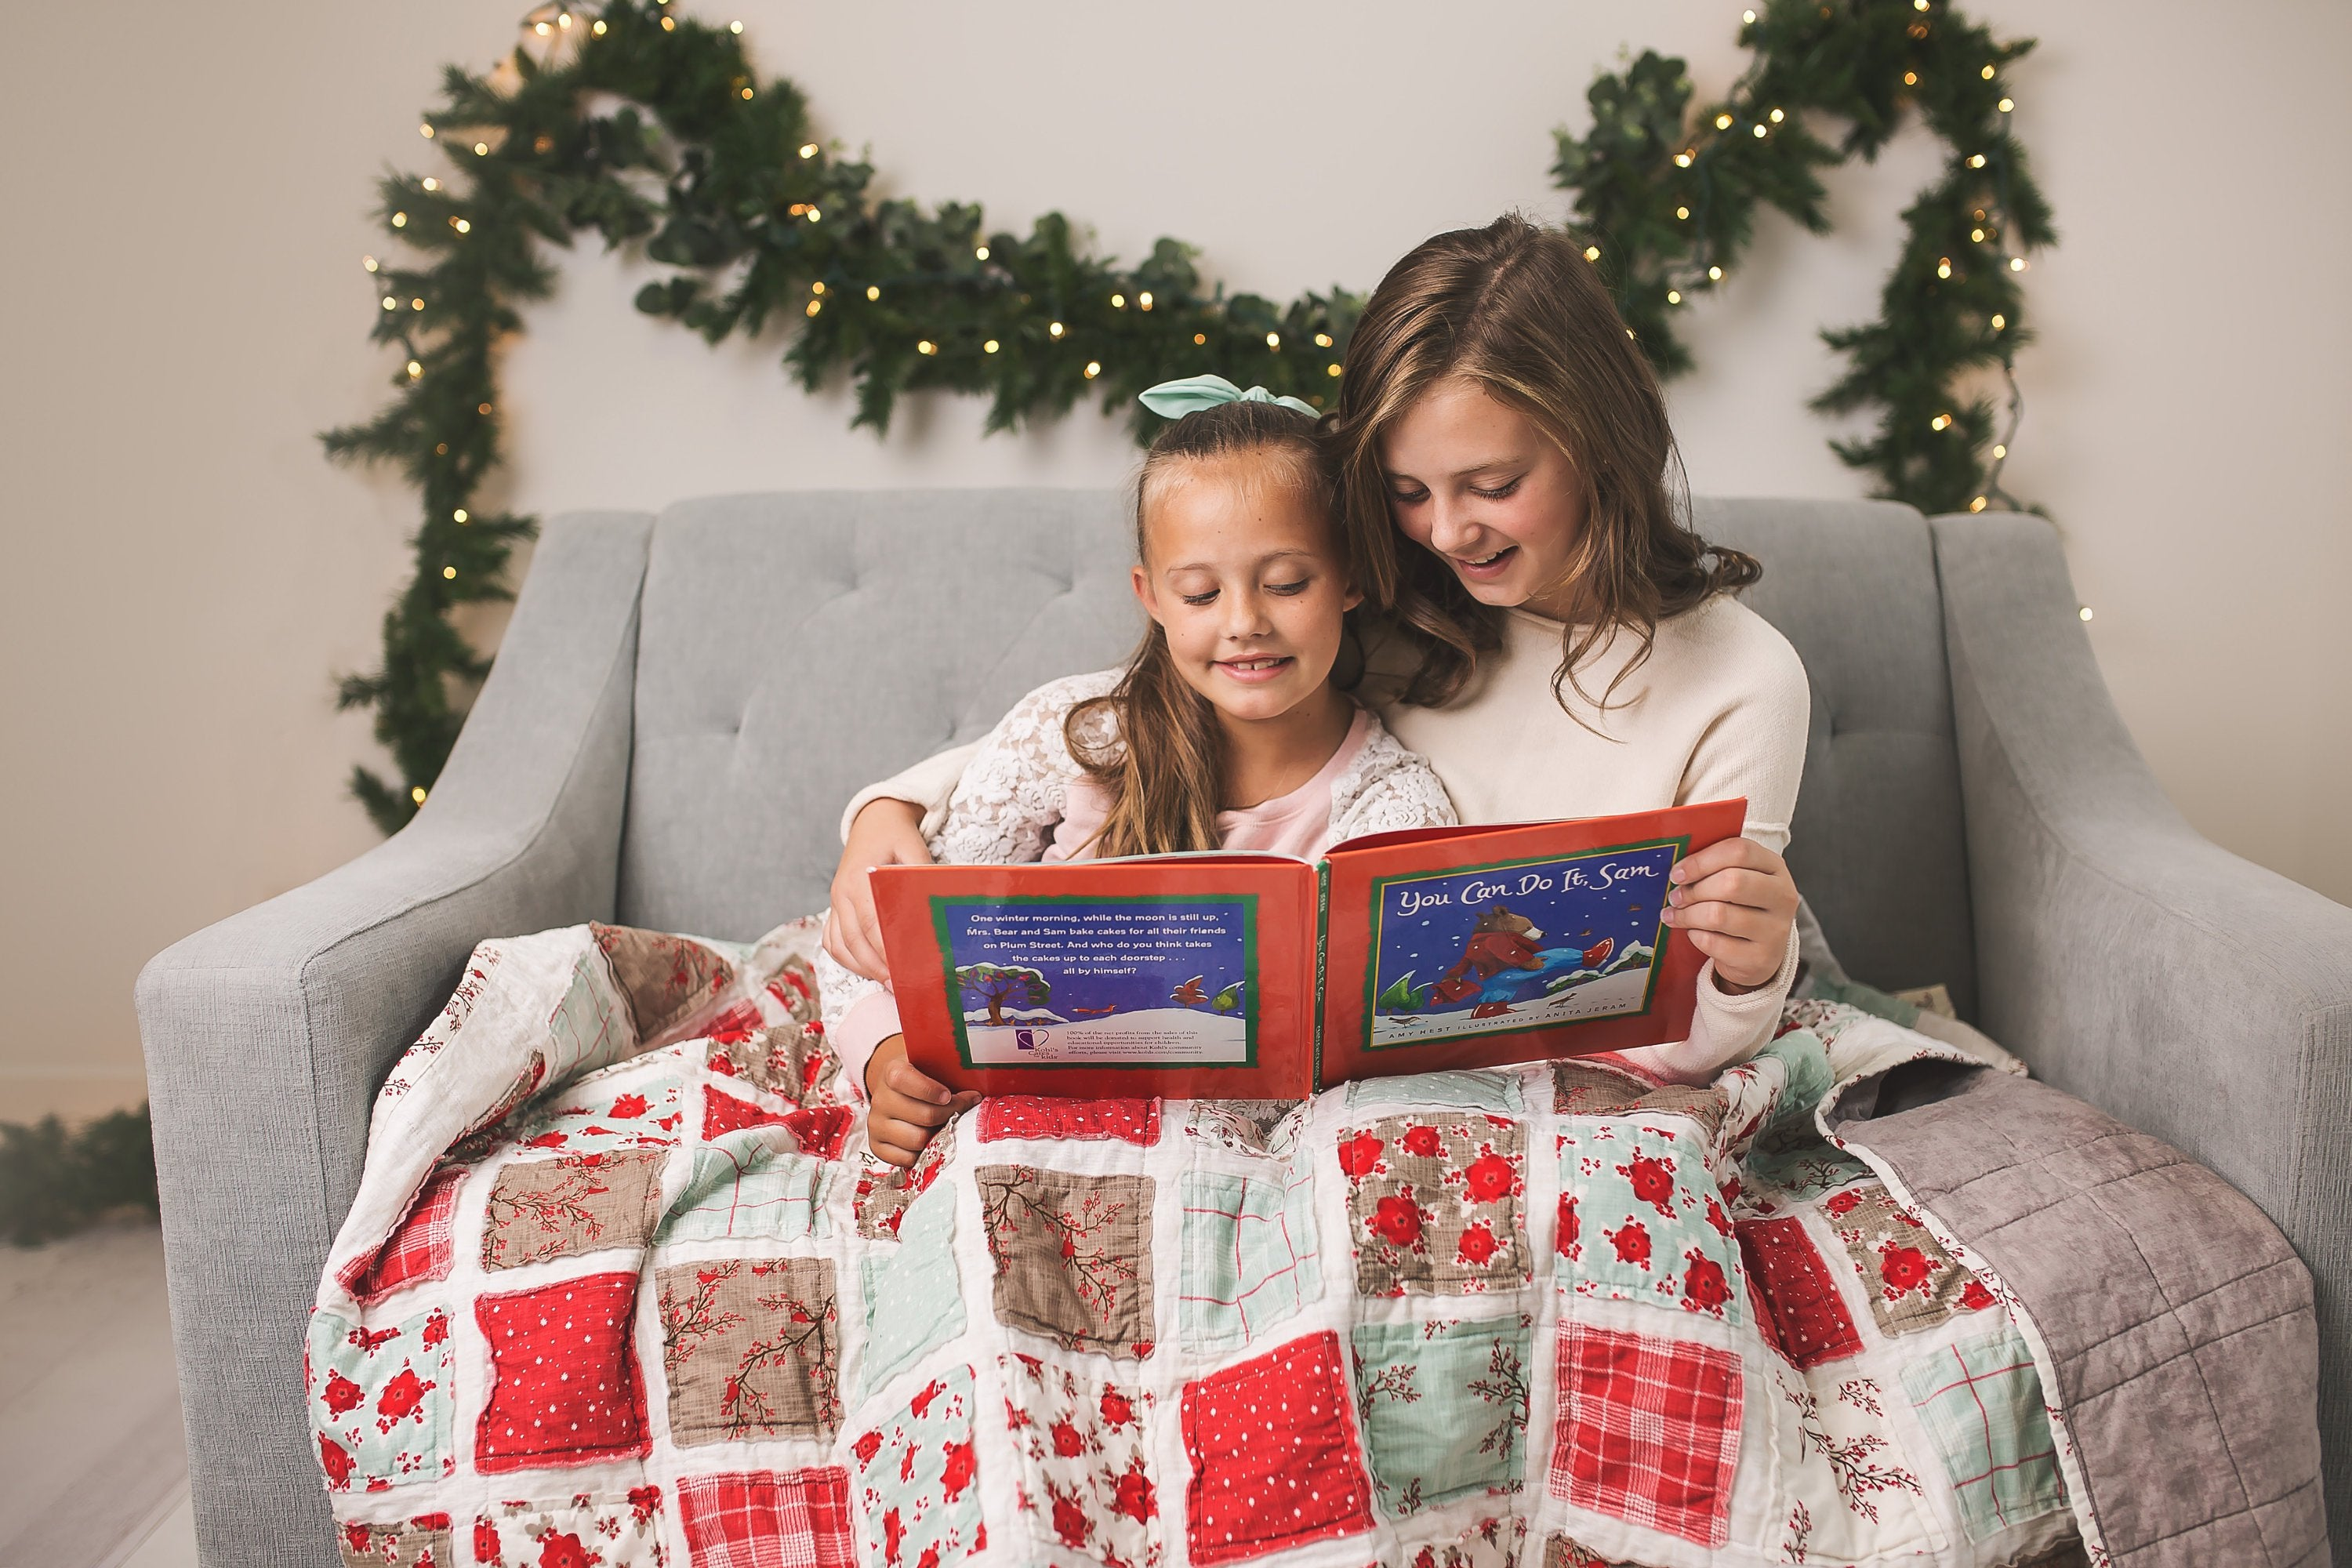 top-holiday-gifts-mother-daughter-yuletide-storytelling-snuggles-christmas-decor-matching-pjs